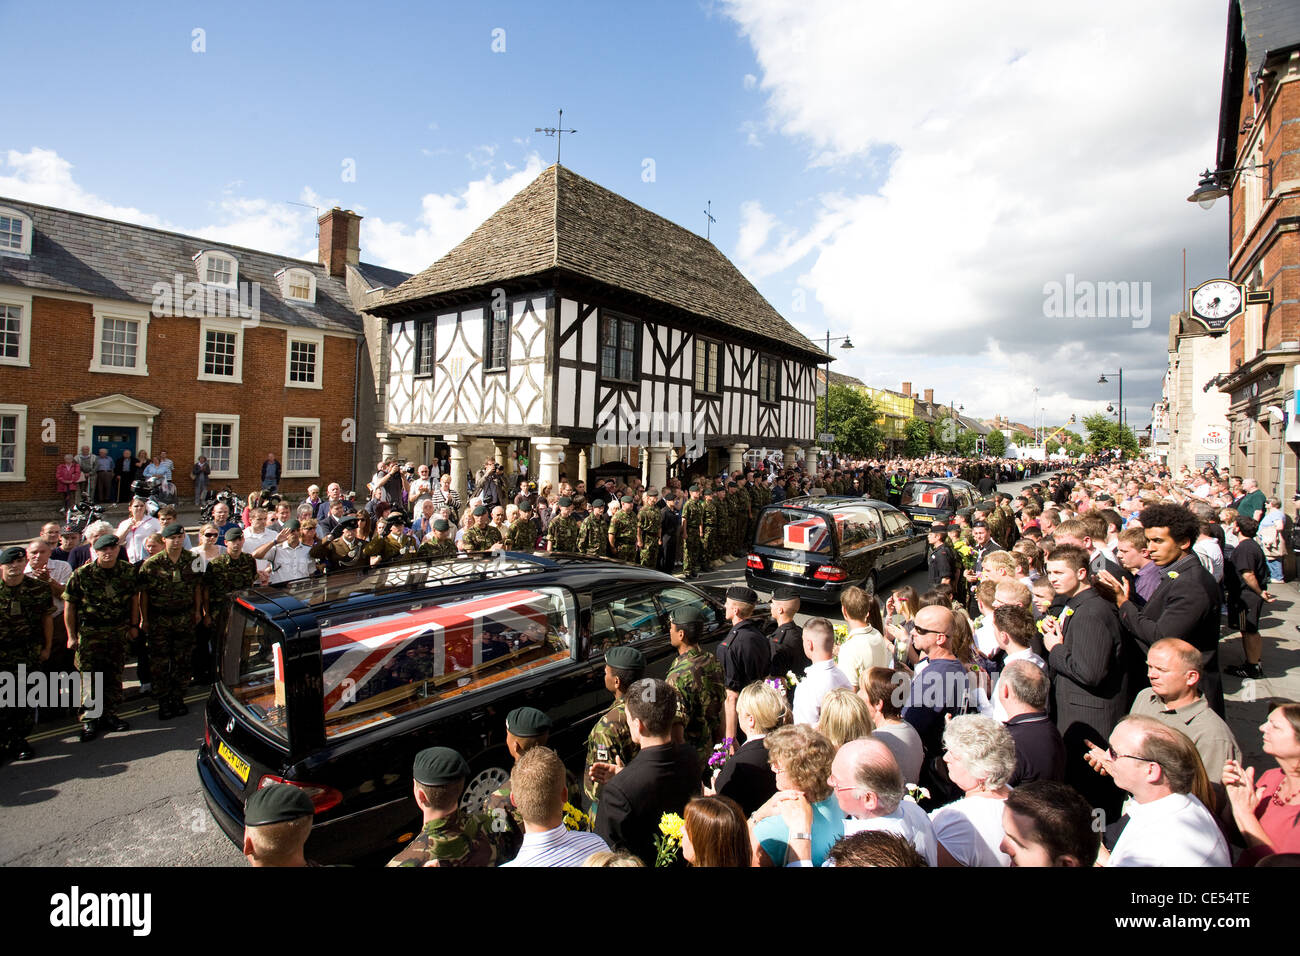 British soldiers killed in combat in Afghanistan are driven in a cortege through the town of Wootton Bassett. - Stock Image